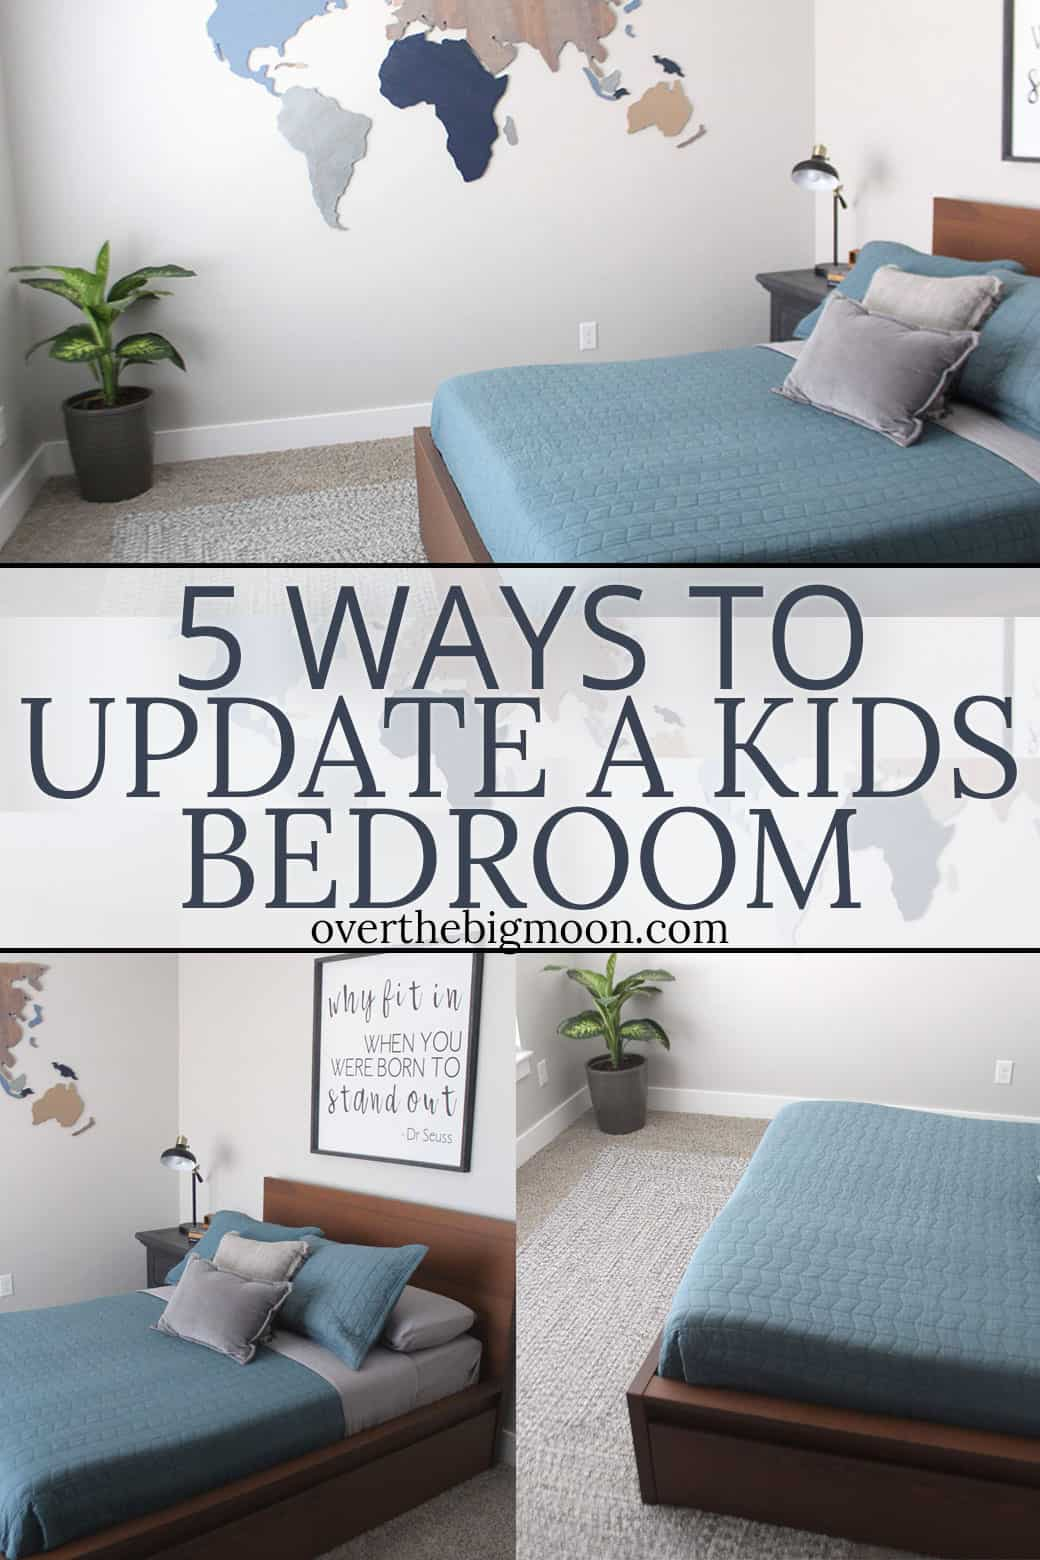 5 Simple Ways to Update a Bedroom -- all these ideas can make a big difference, without breaking the bank! From overthebigmoon.com!